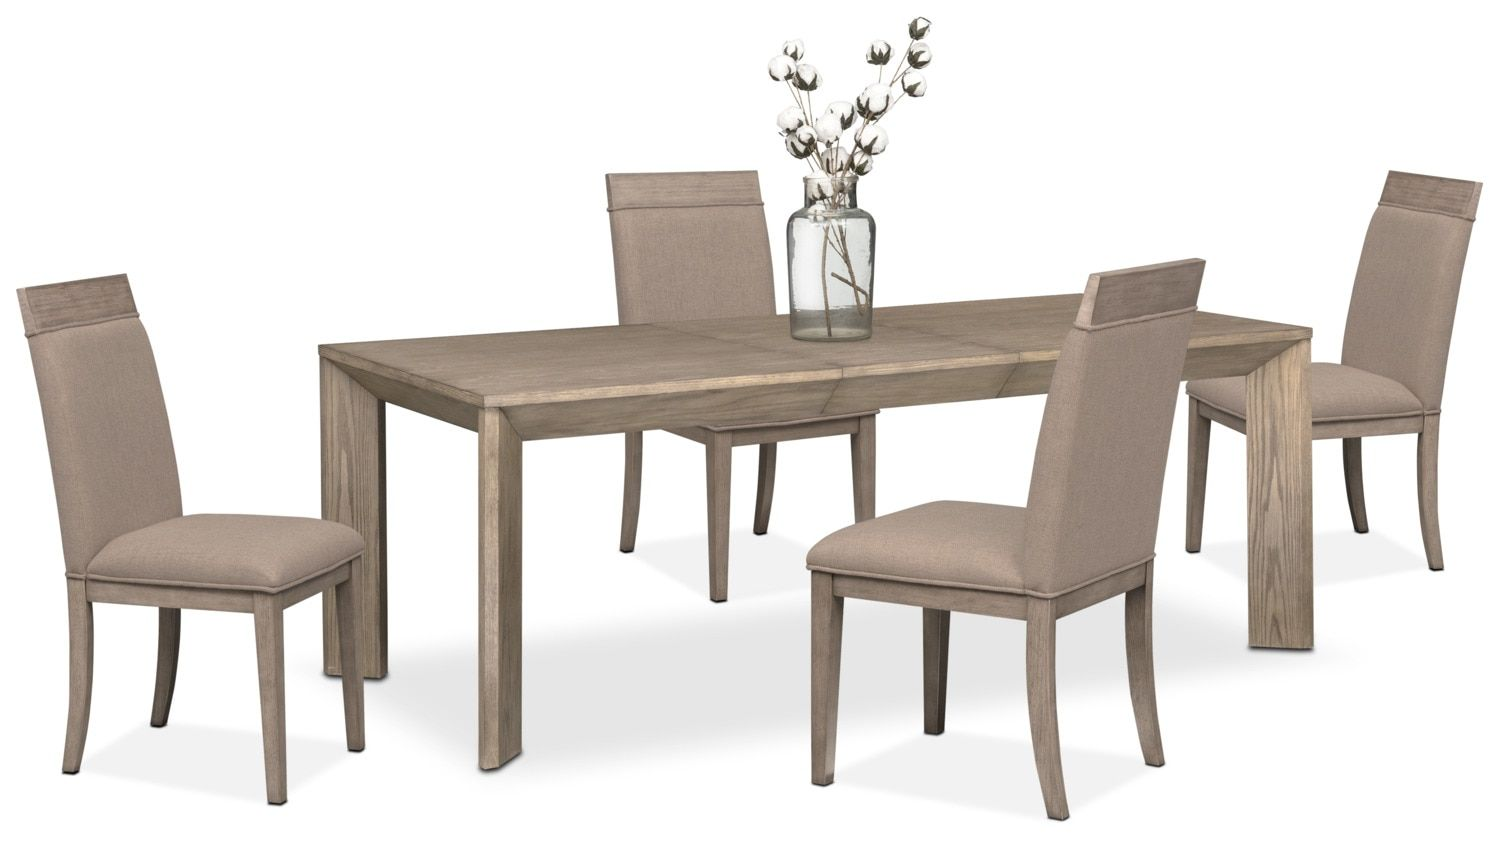 Gavin Table And 4 Side Chairs Graystone American Signature Furniture Side Chairs Dining Room Decor Furniture #value #city #living #room #tables